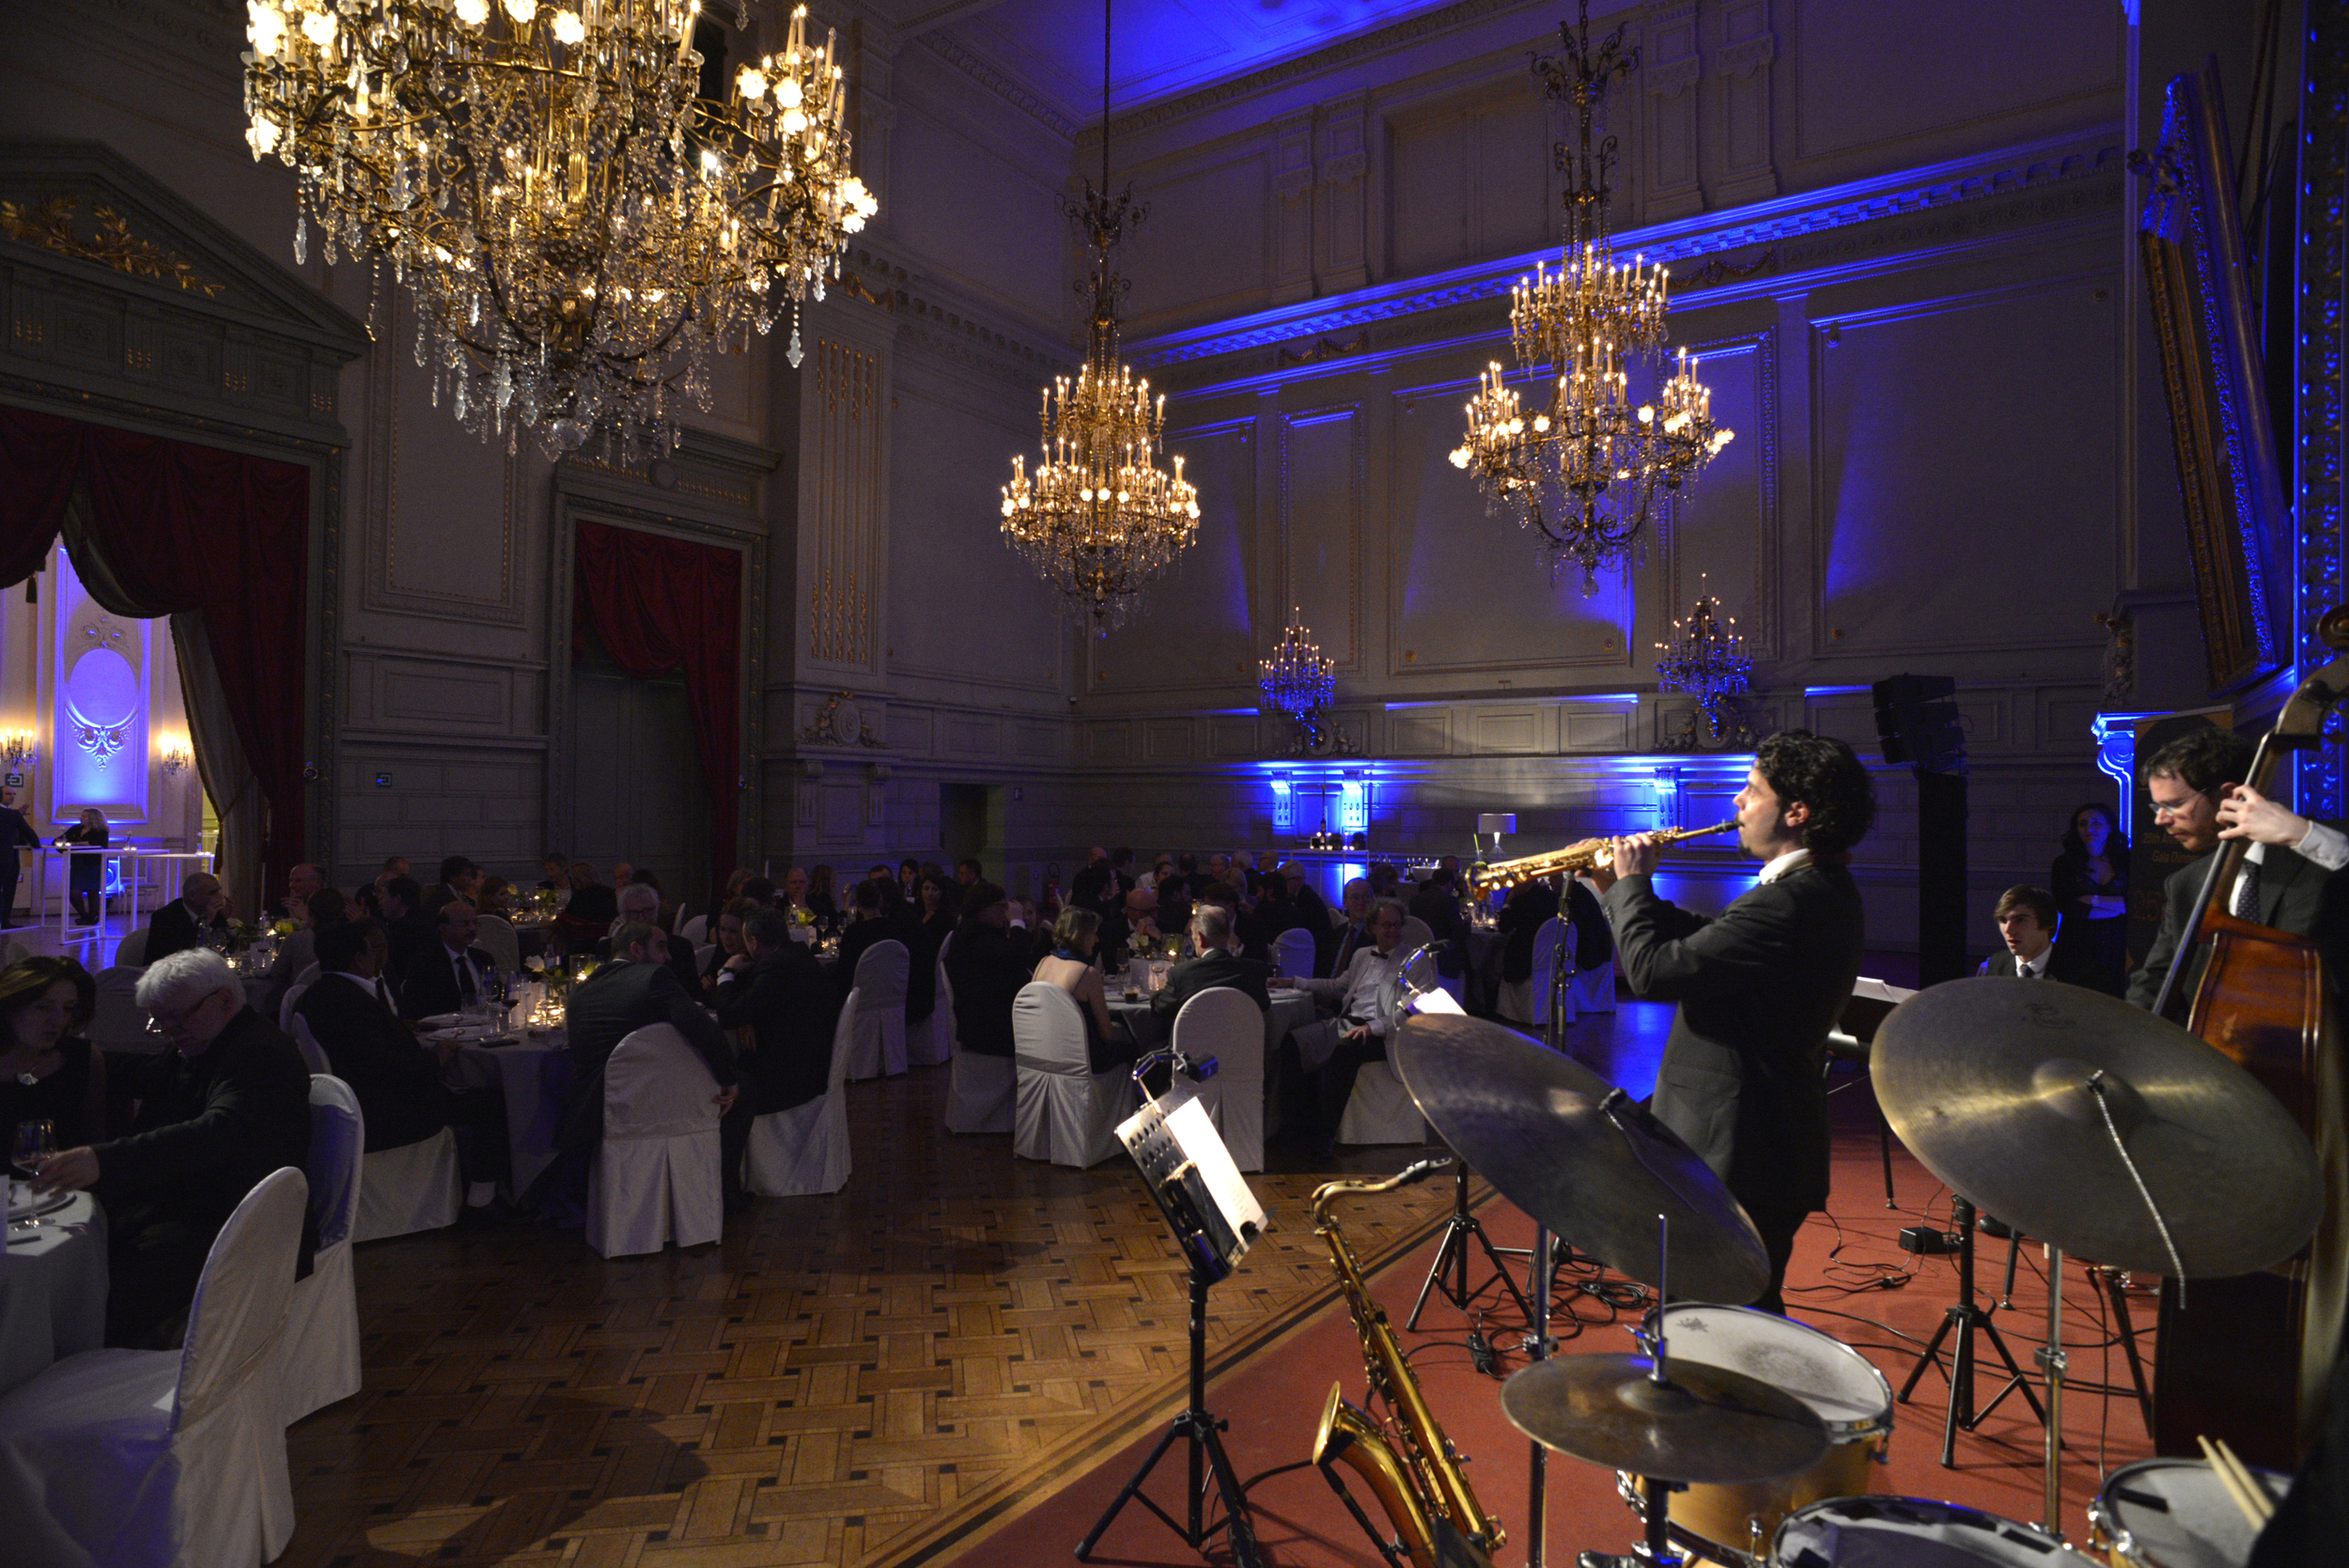 The 25th Anniversary was celebrated with a Big Jazz Orchestra concert and Gala Dinner at the wonderful venue of the Concert Noble at the end of Day 1.